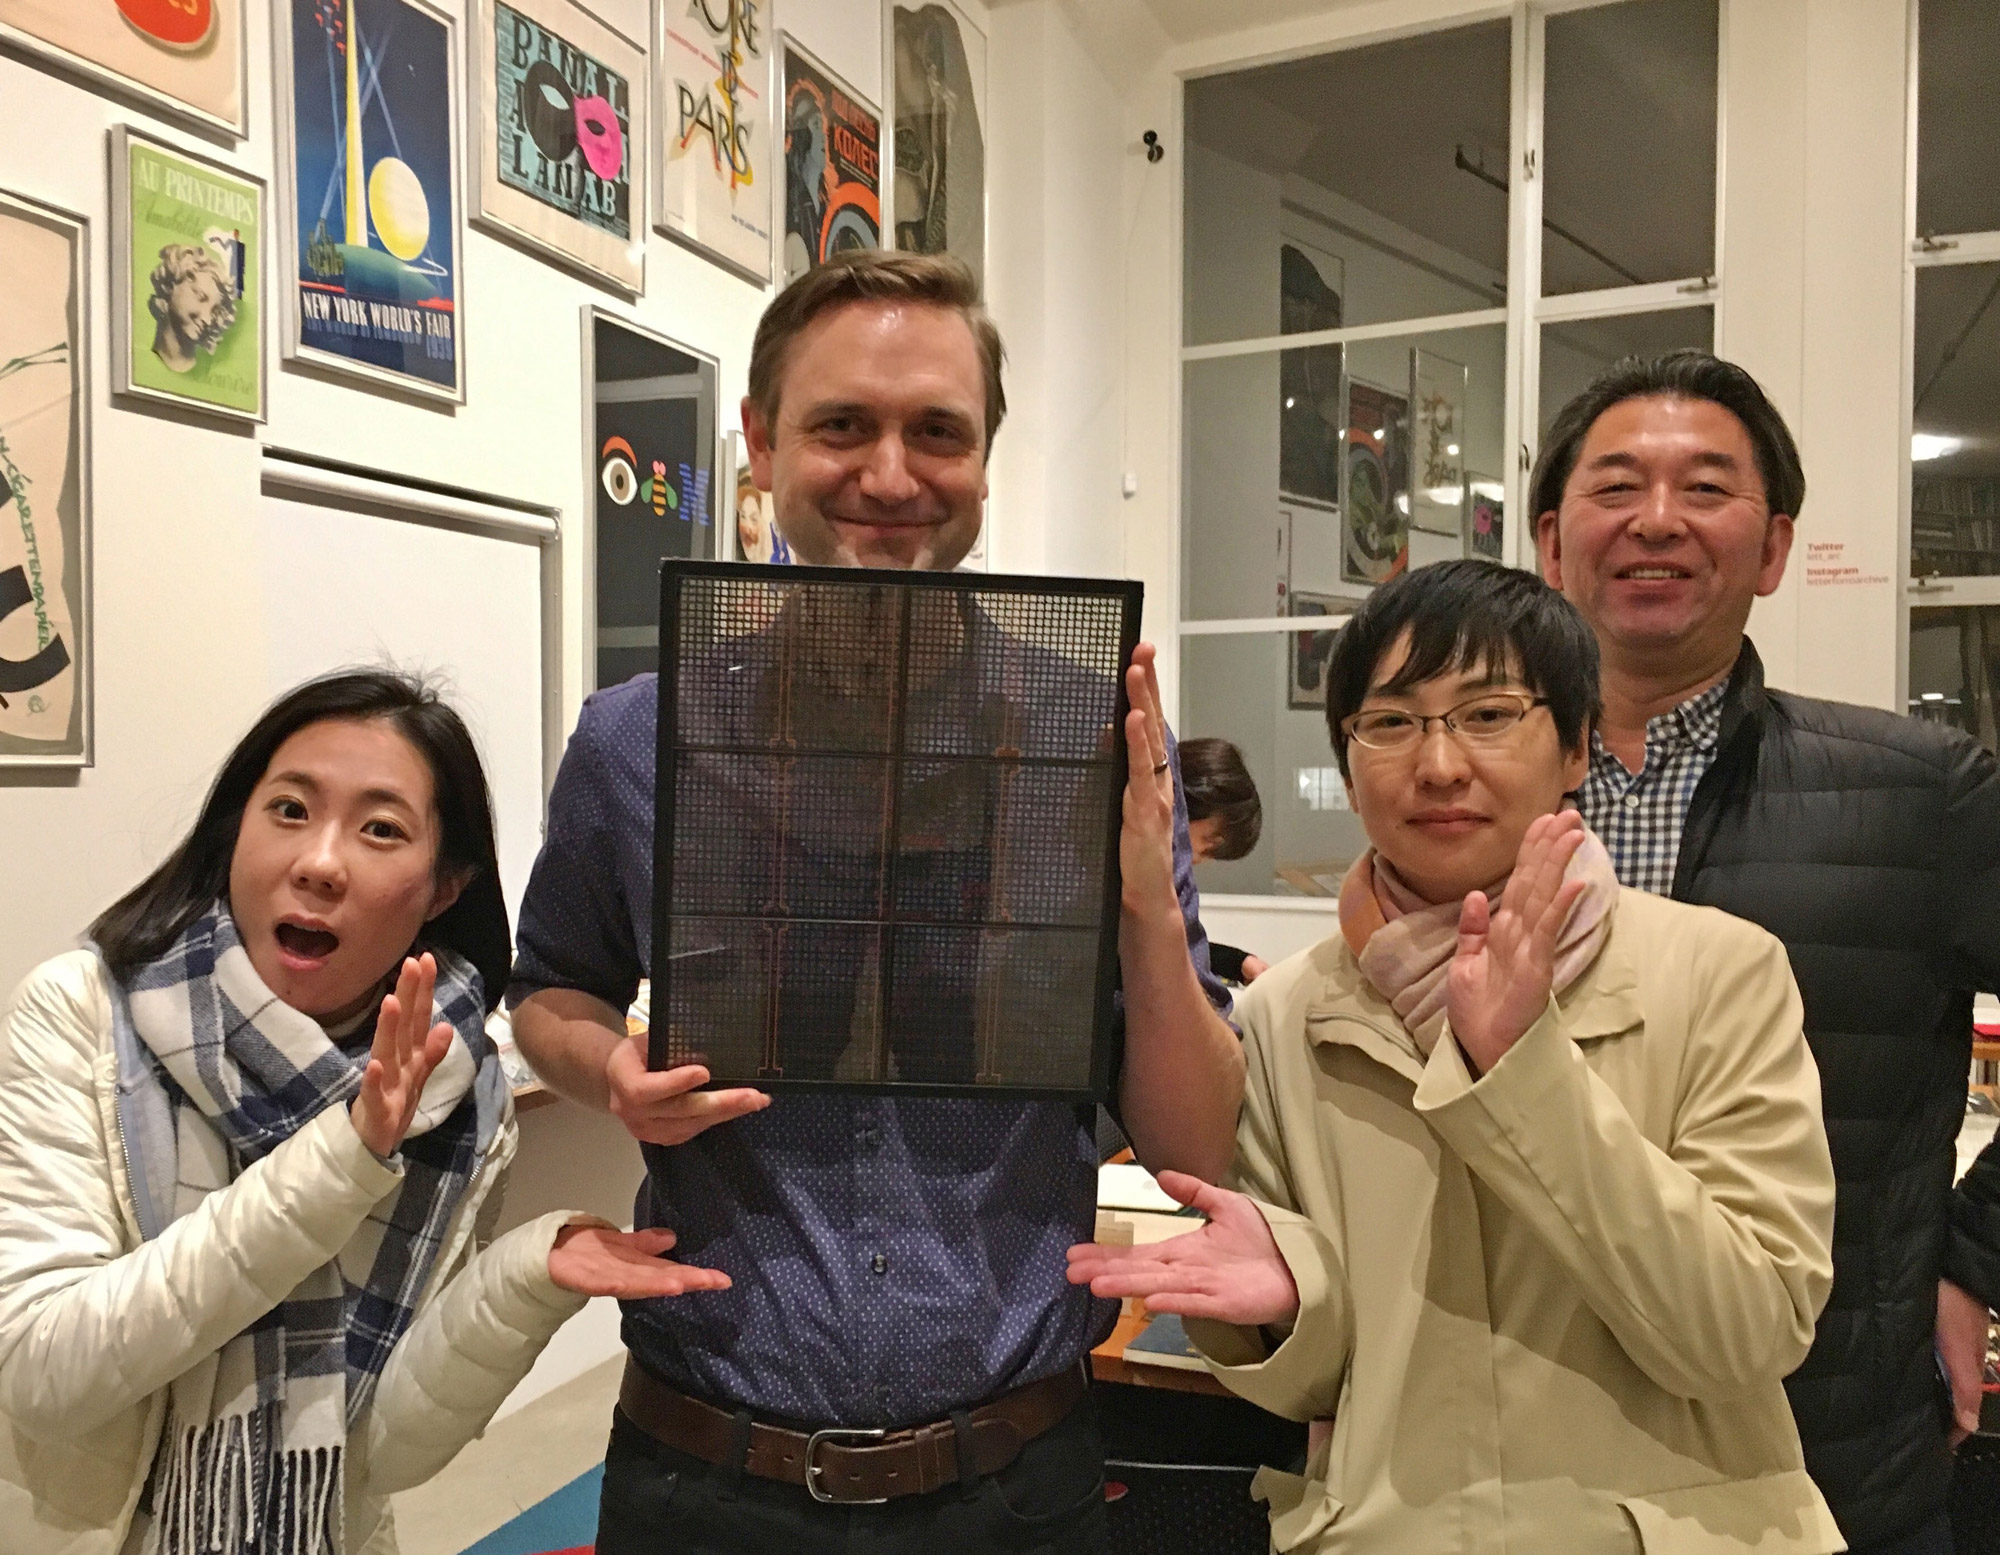 Min-Young Kim, Akira Himei, and Chiaki Nakamori of Morisawa present the phototype plate donation to the Archive's Stephen Coles in November 2017.